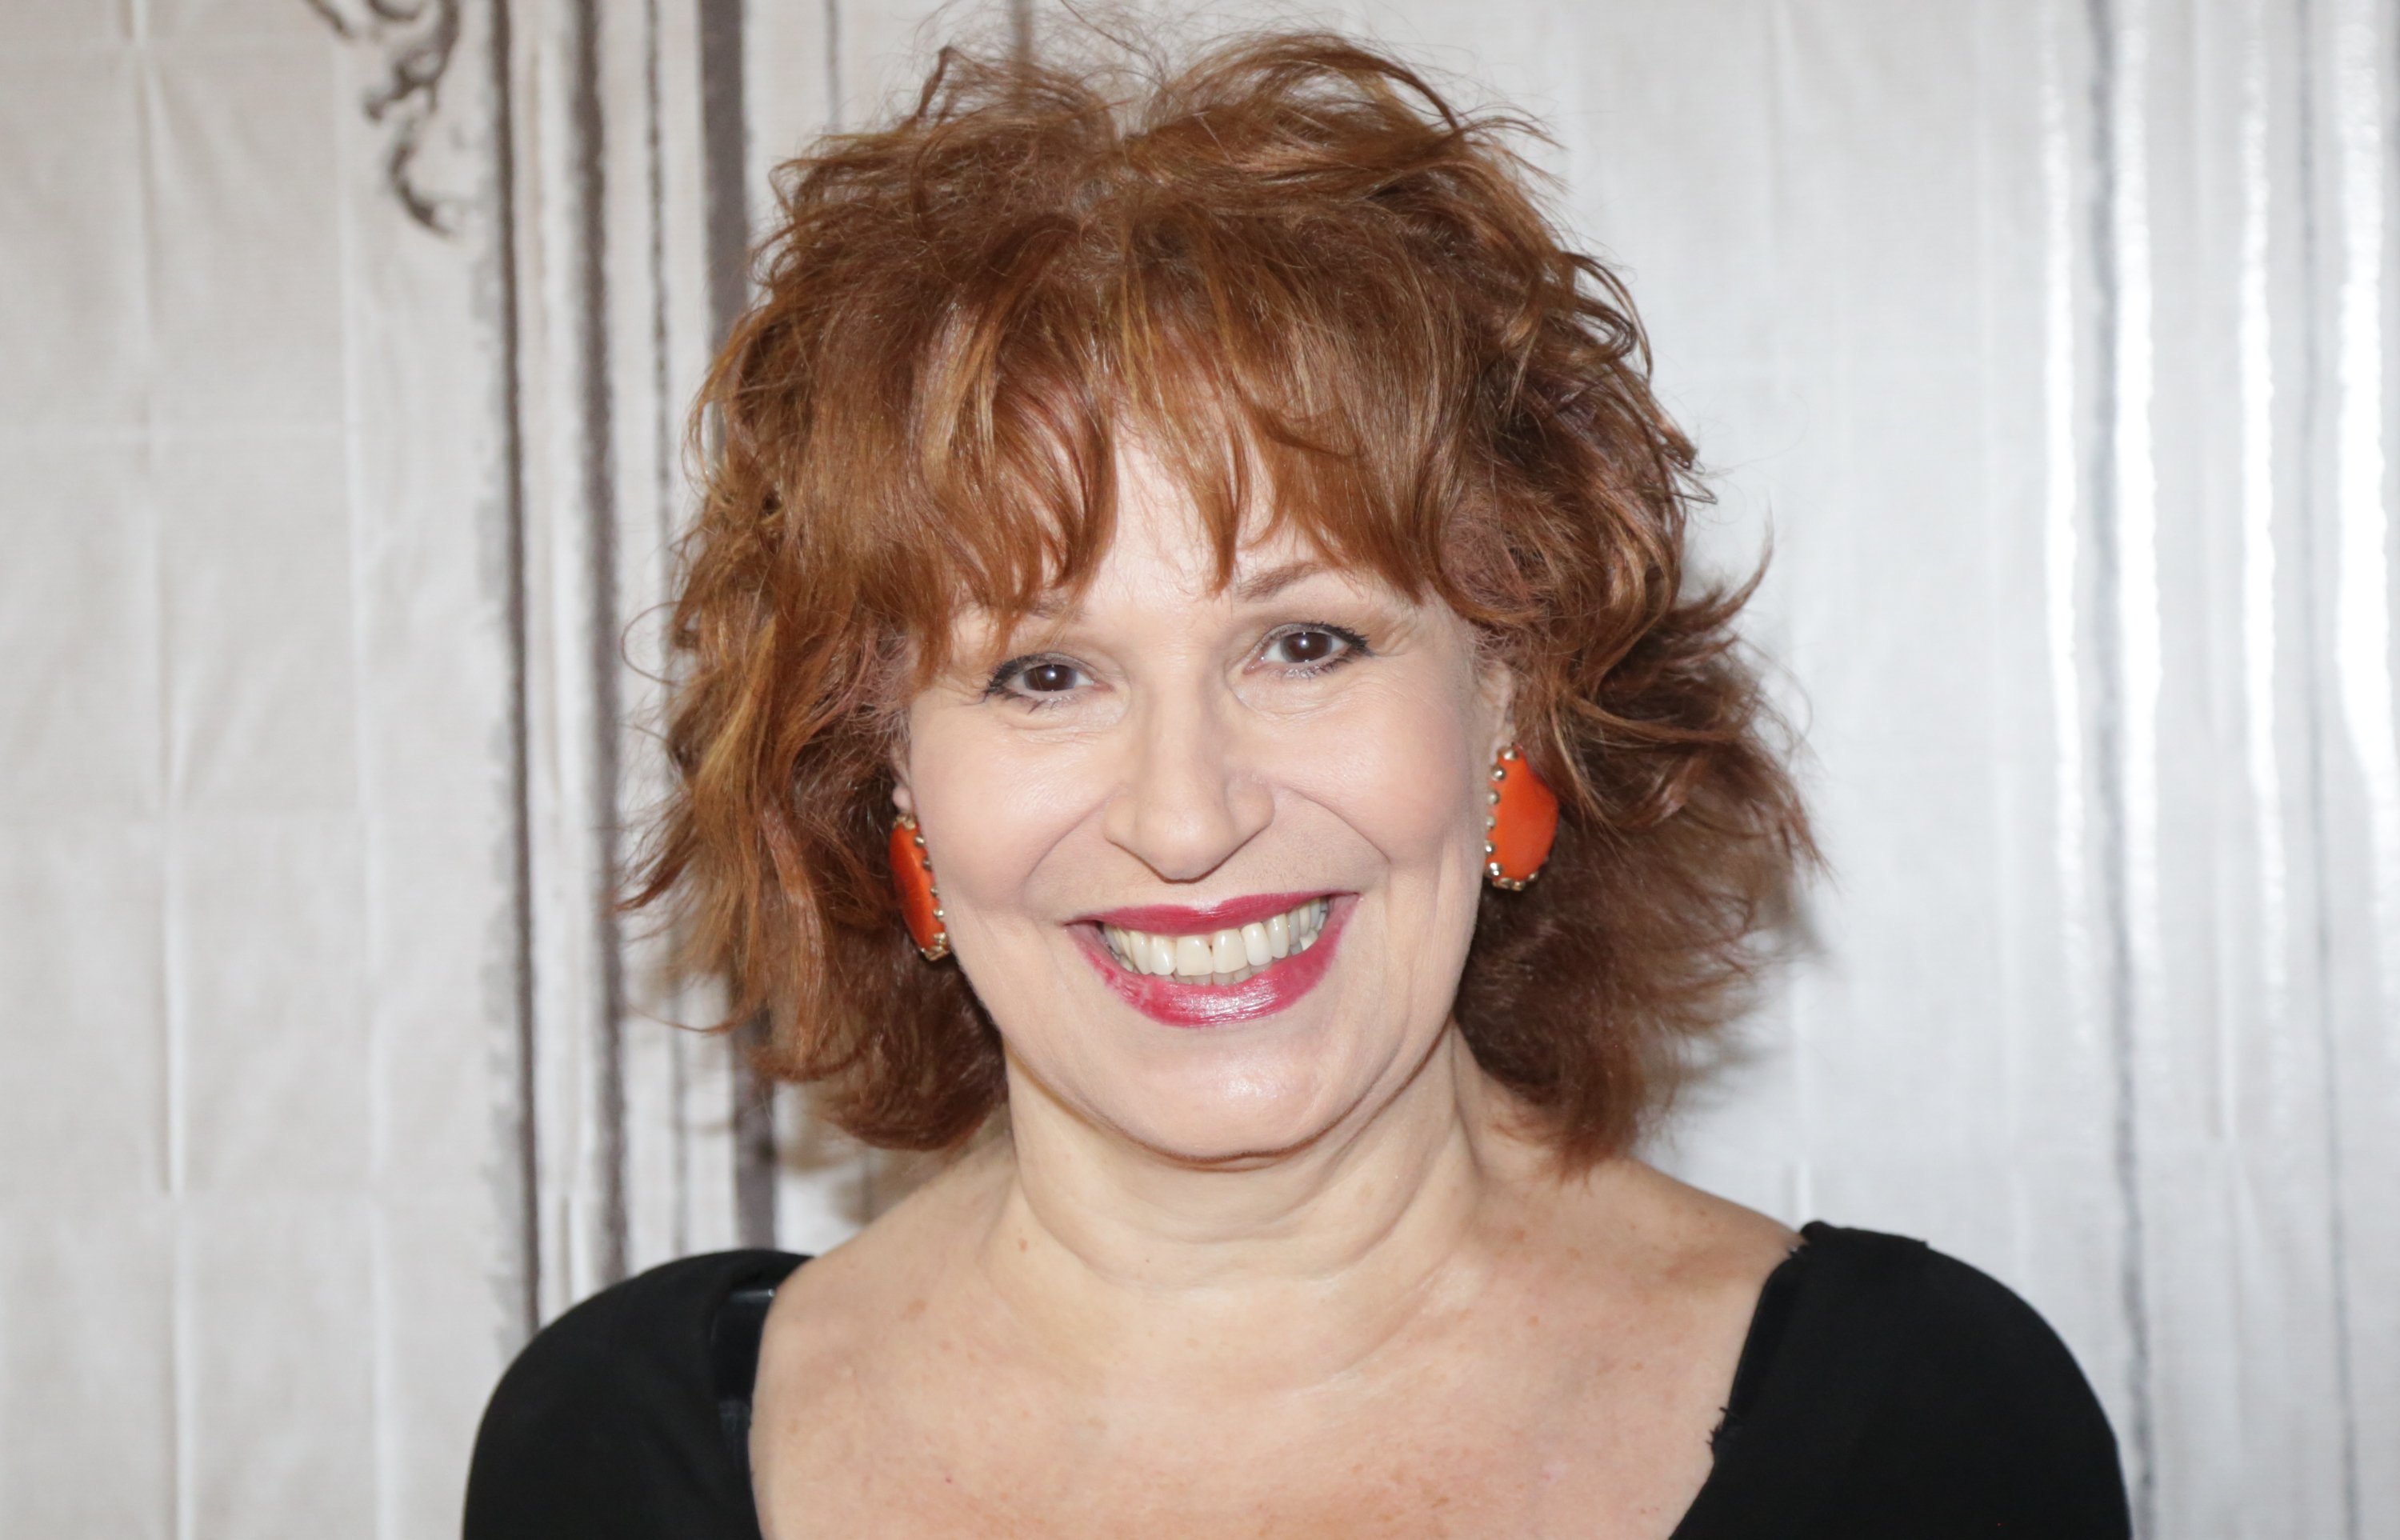 Joy Behar attends AOL BUILD Speaker Series in New York on June 9, 2015. | Photo: GettyImages